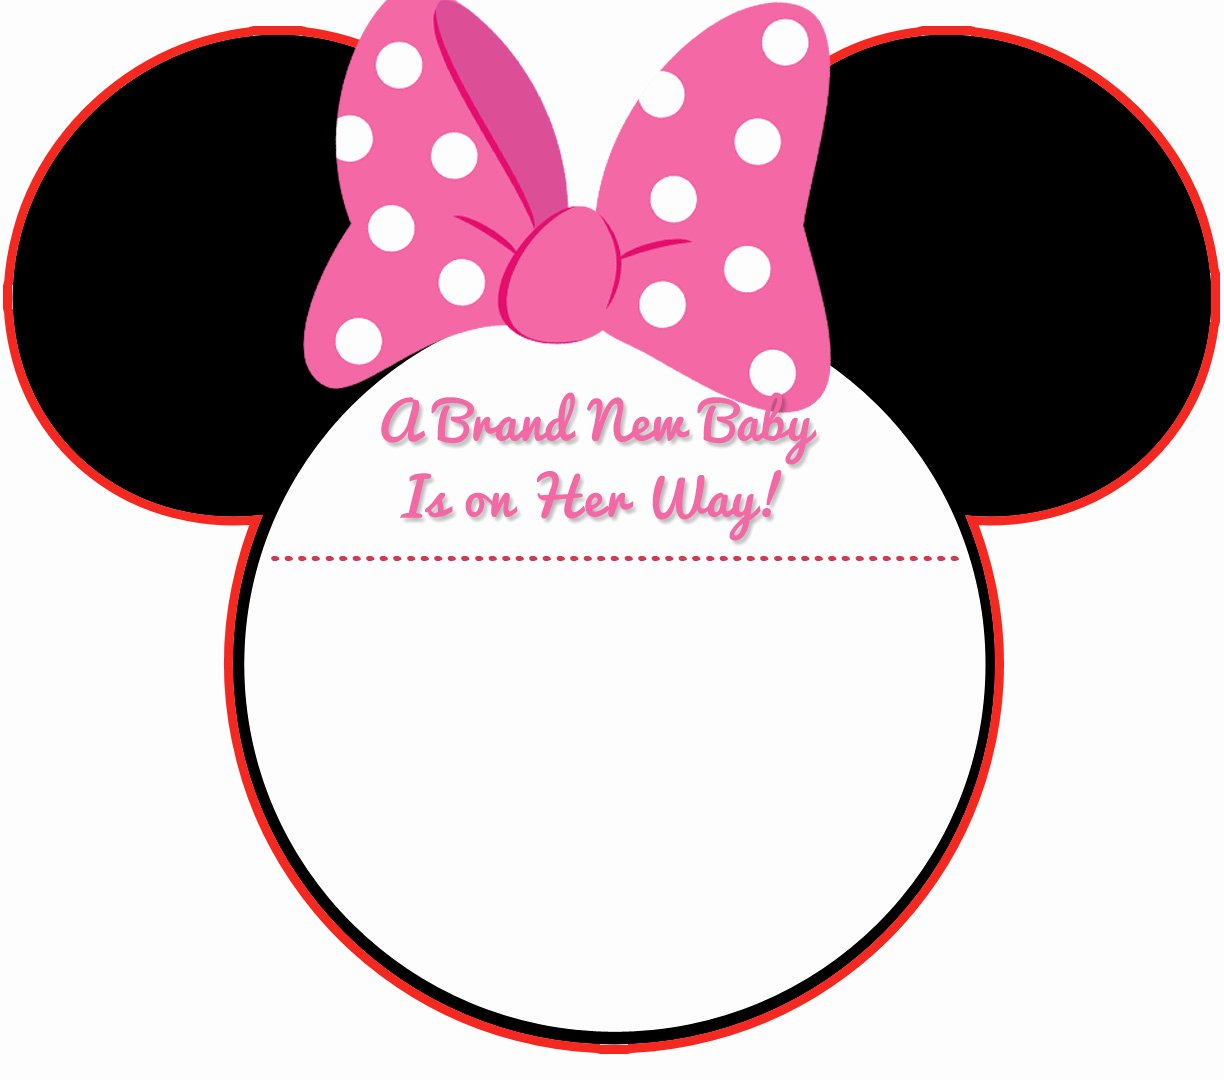 Baby Minnie Mouse Invitation Lovely New Free Printable Mickey Mouse Baby Shower Invitation